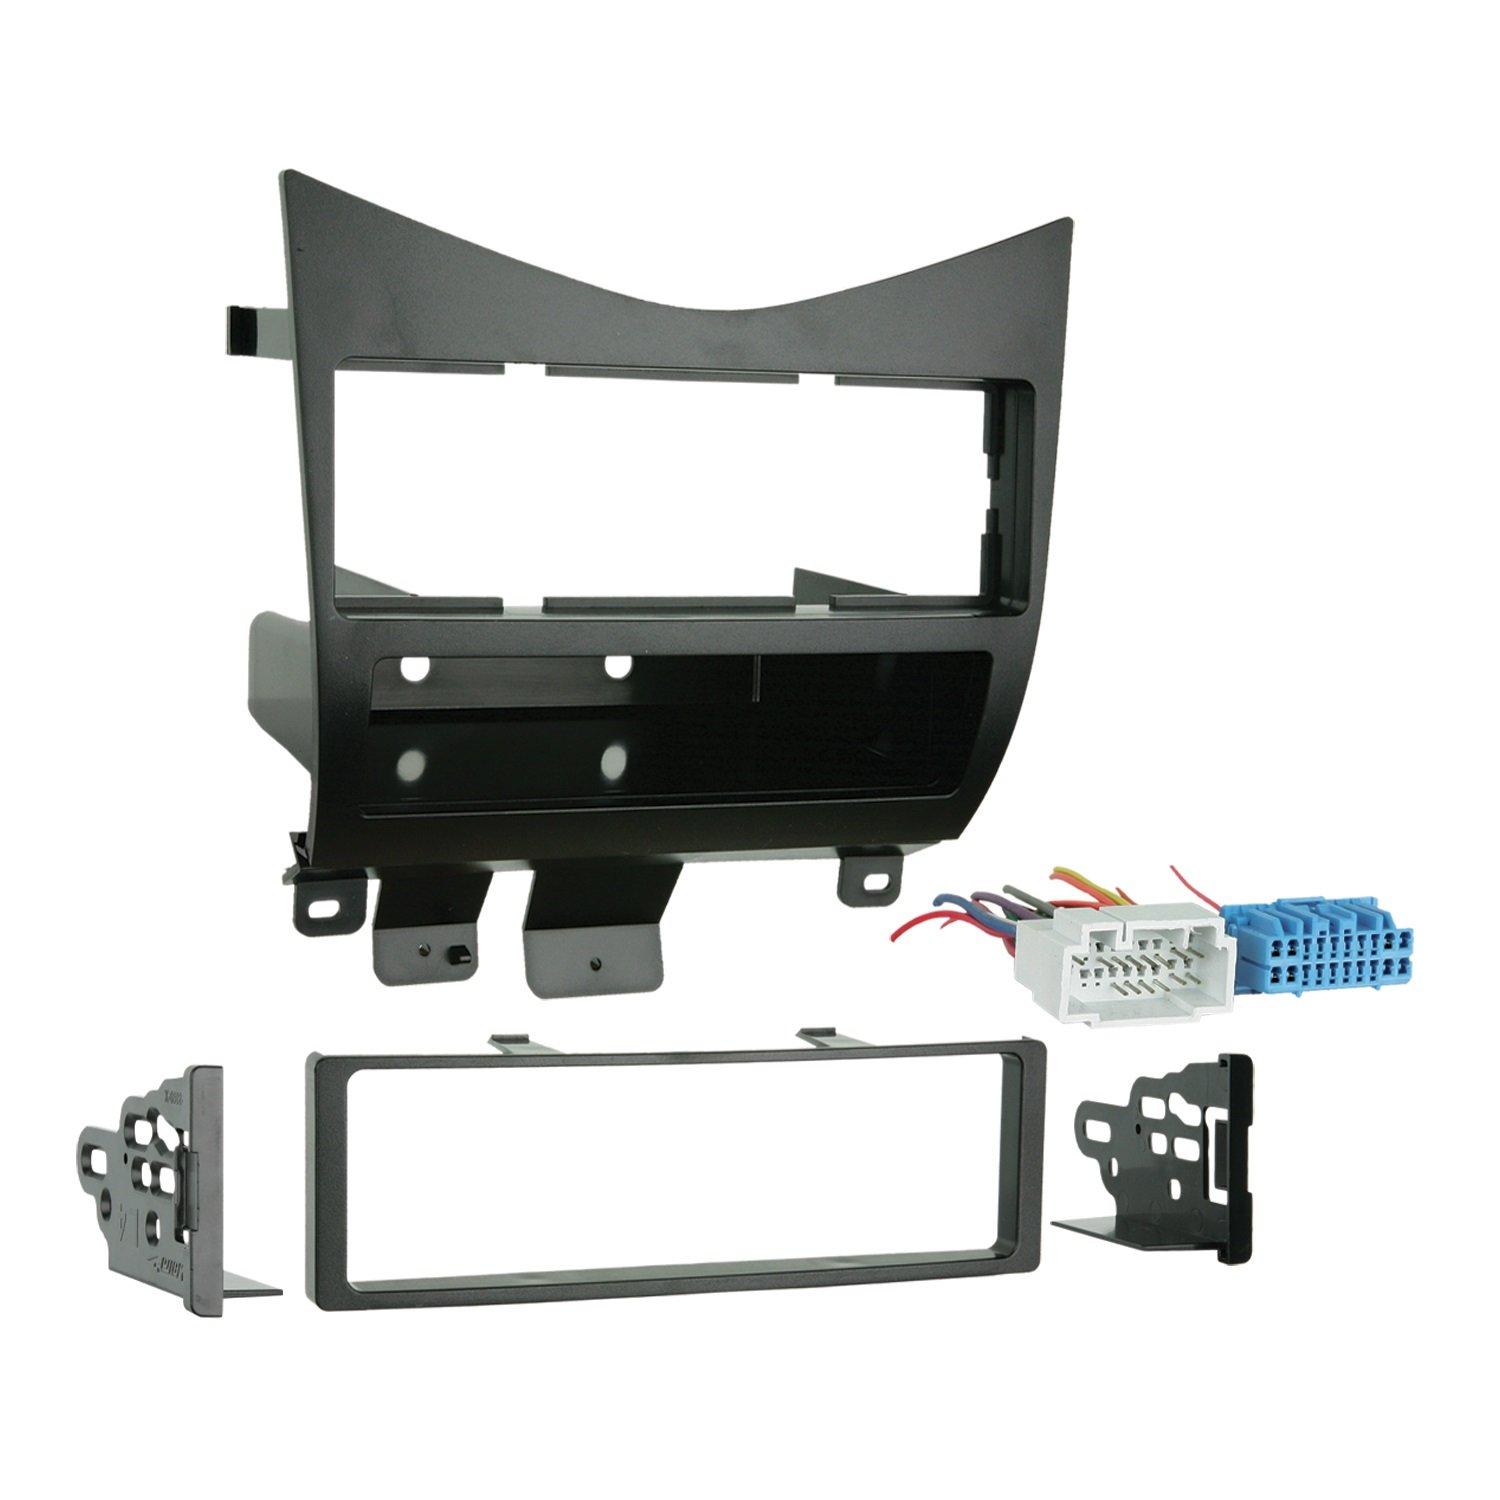 61p9j9SSs5L._SL1500_ amazon com metra 99 7862 lower dash single din installation kit single din wiring harness gm 98 at webbmarketing.co